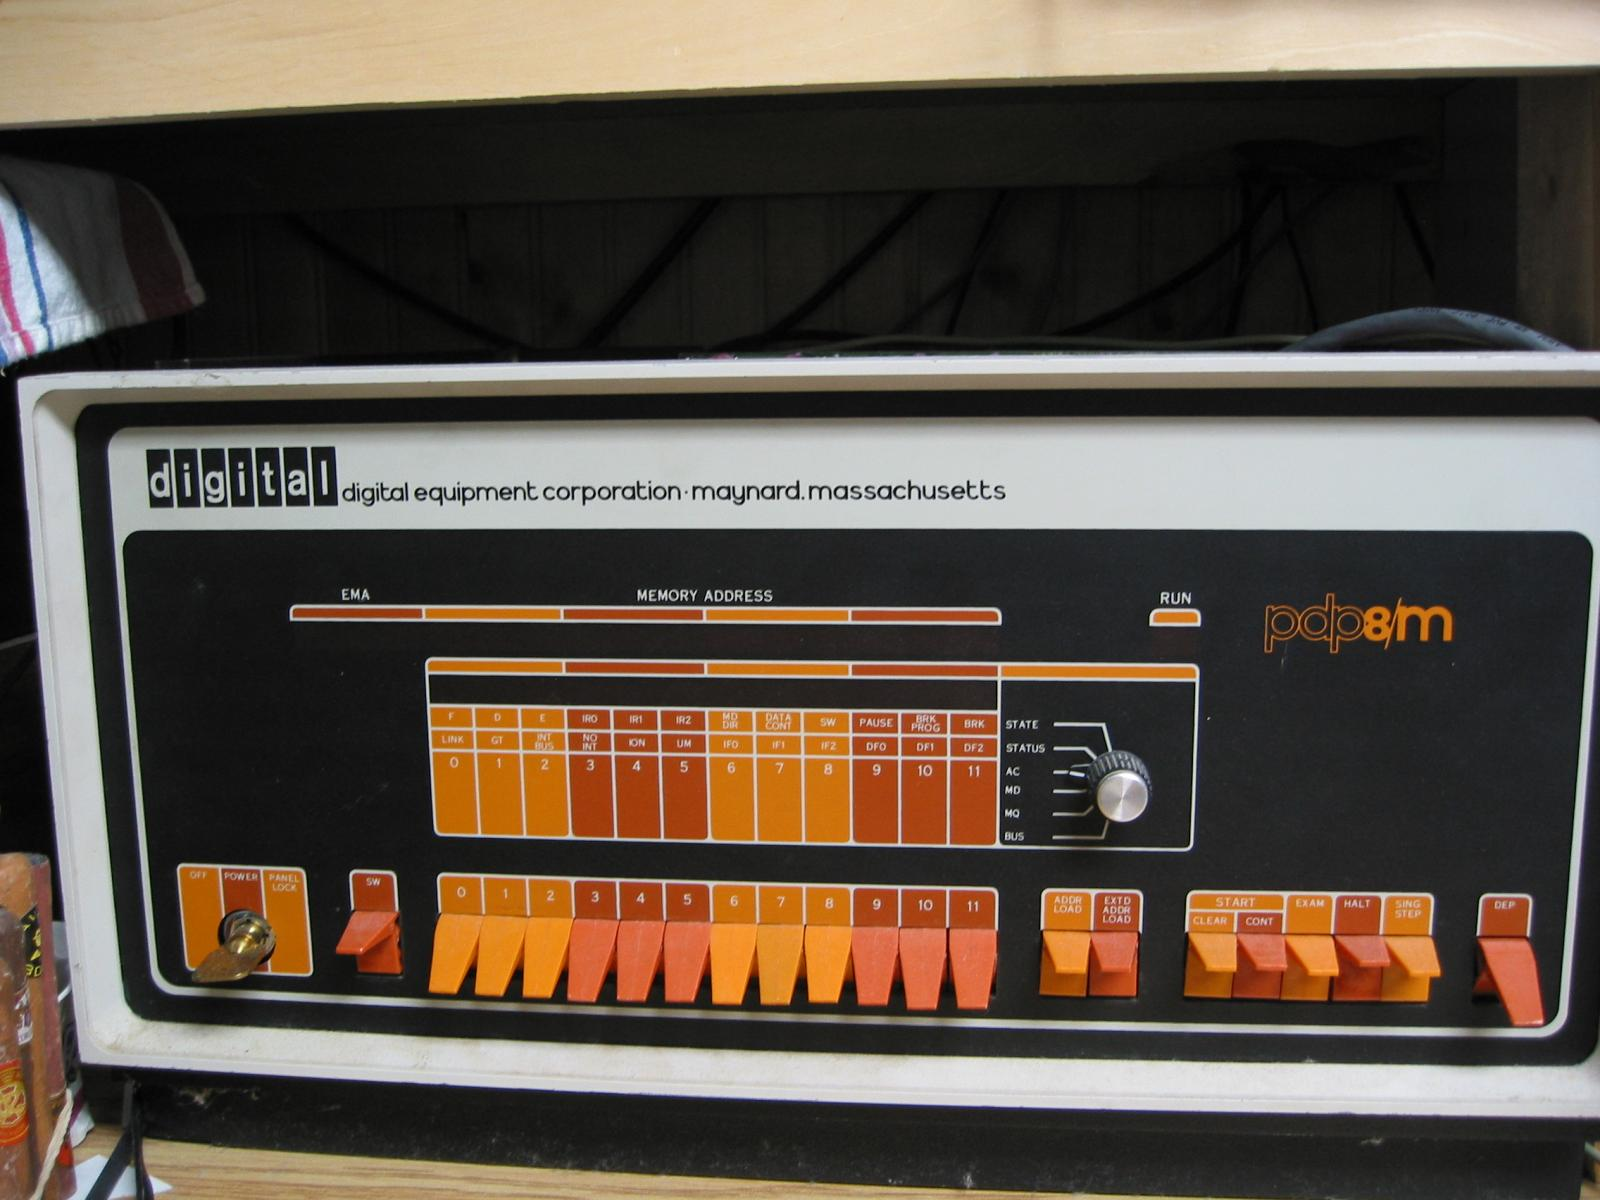 PDP-8 1 Pics, Technology Collection